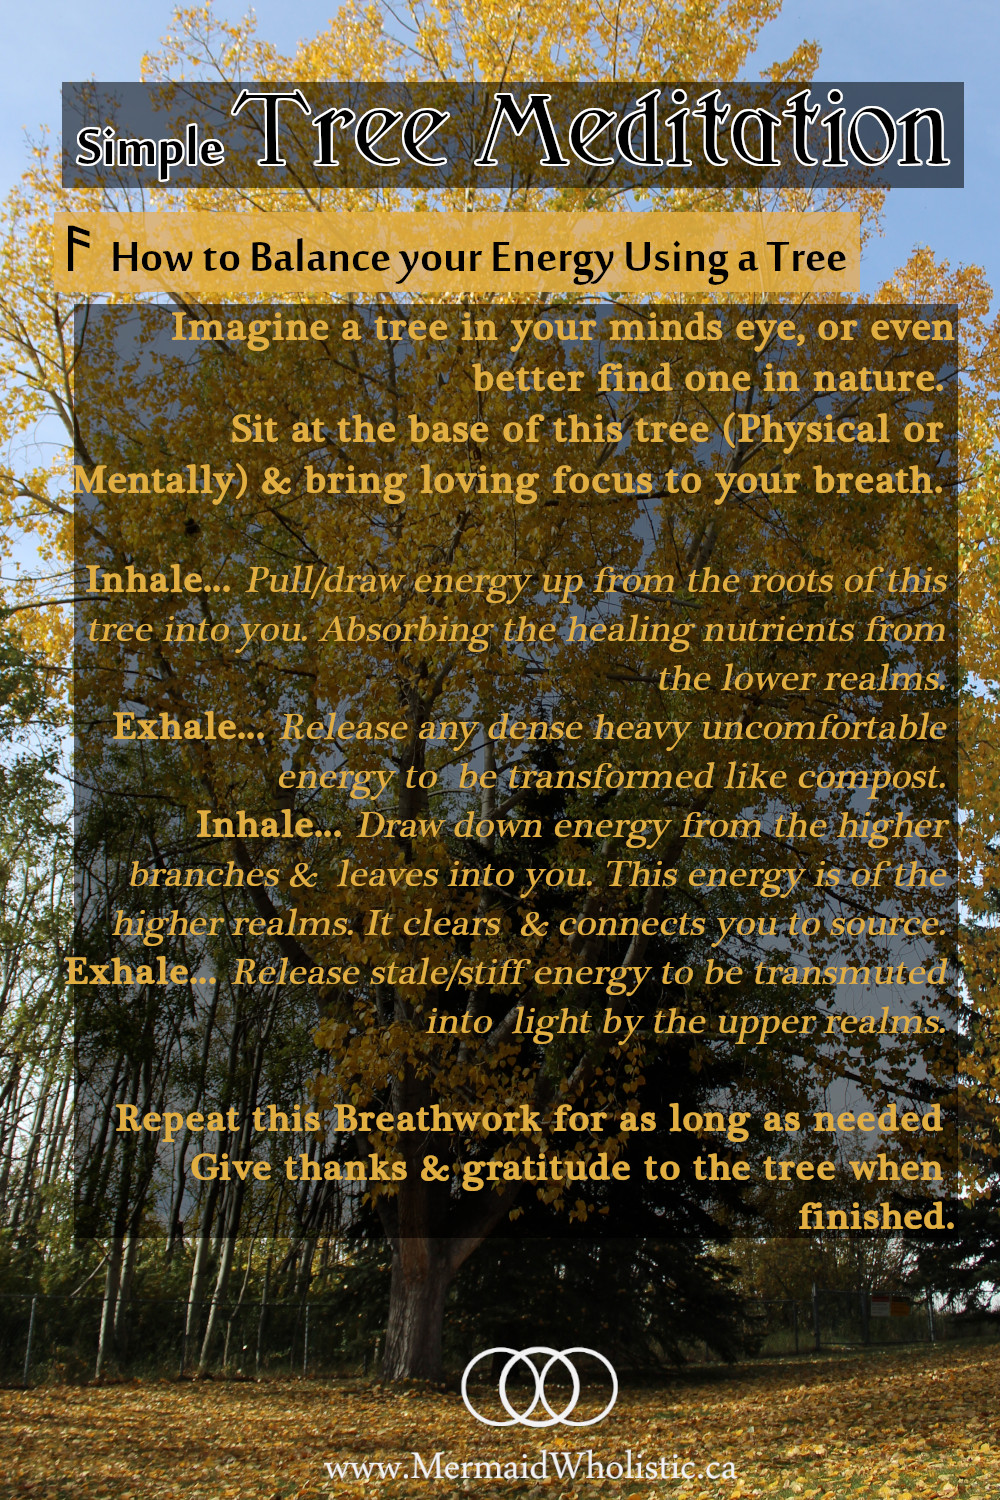 Shamanic Tree Meditation. Reduce the stress of the day!